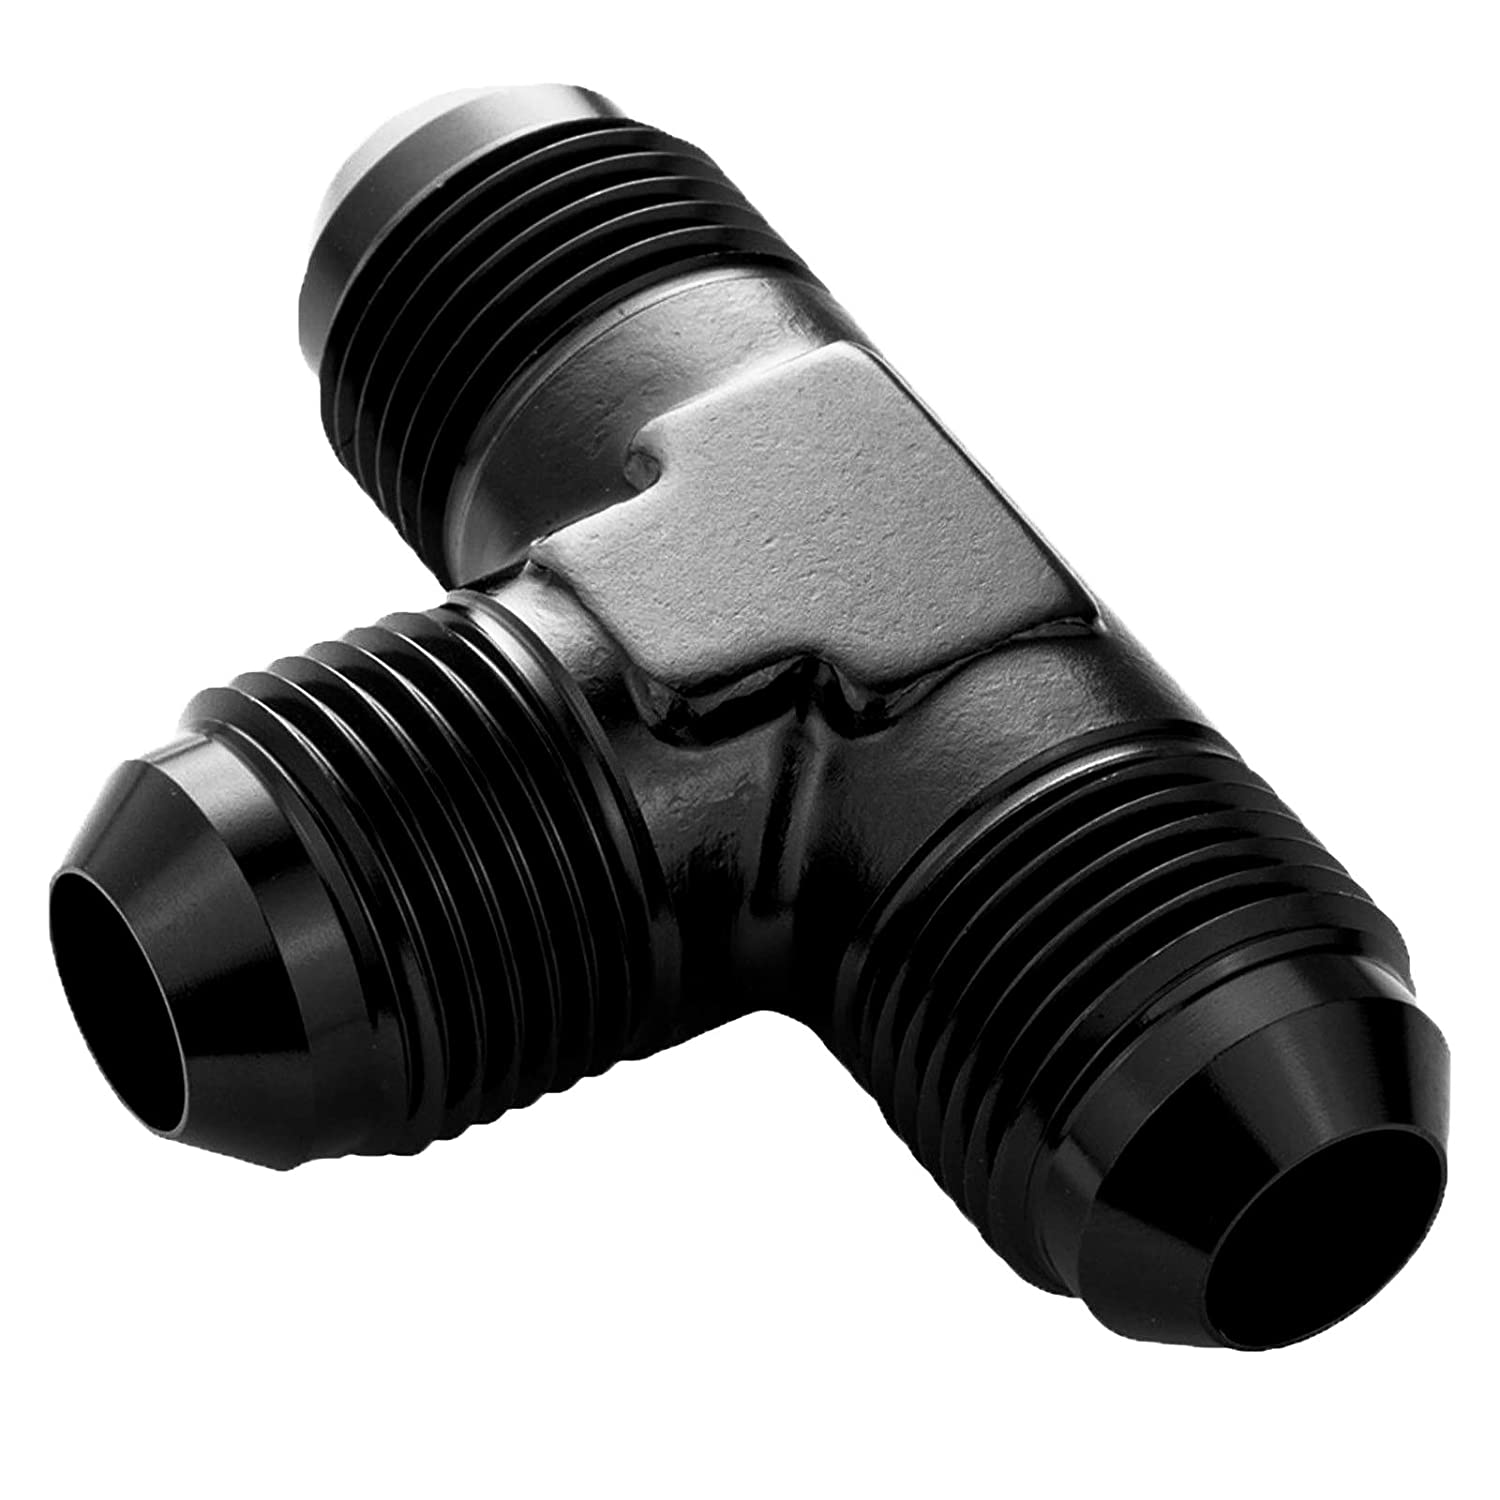 6AN Male to 6 AN Male Flare Hose Union Coupler Fitting with 1//8 NPT Pressure Side Port Fuel Line Pipe Adapter Aluminum Black